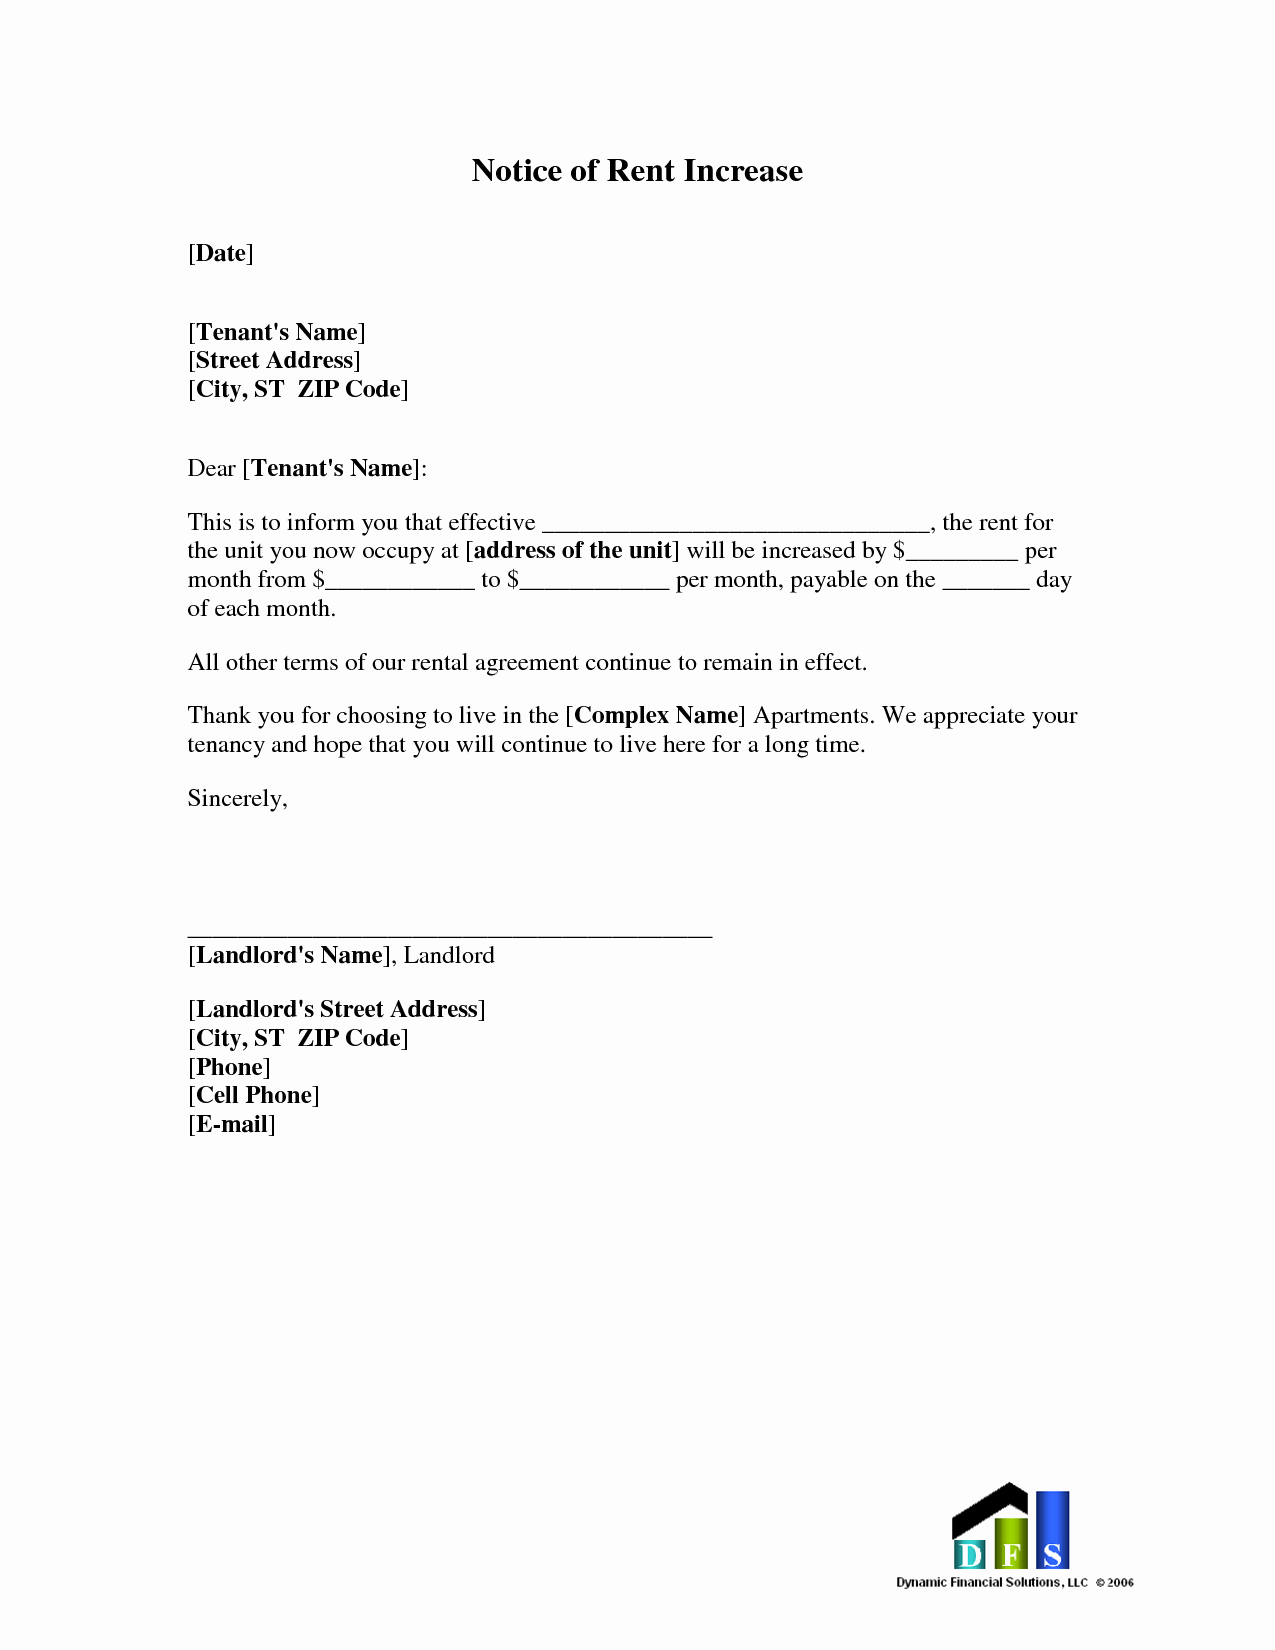 Rent Increase Notice Sample Luxury Best S Of Rent Increase Letter to Tenant In